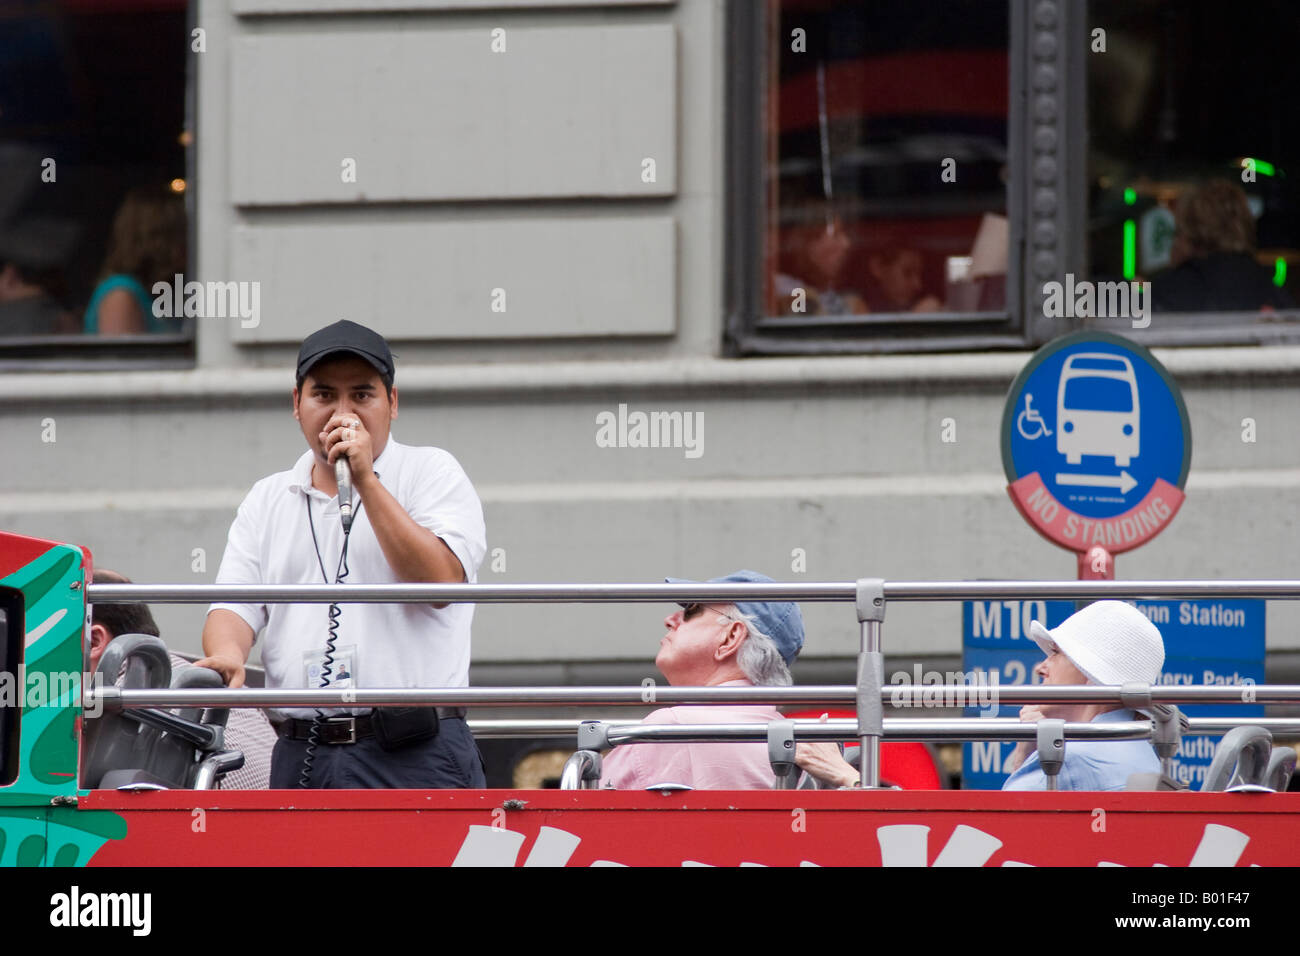 A tour guide on a bus speaks into a microphone in New York City, New York, USA, August, 2006 Stock Photo